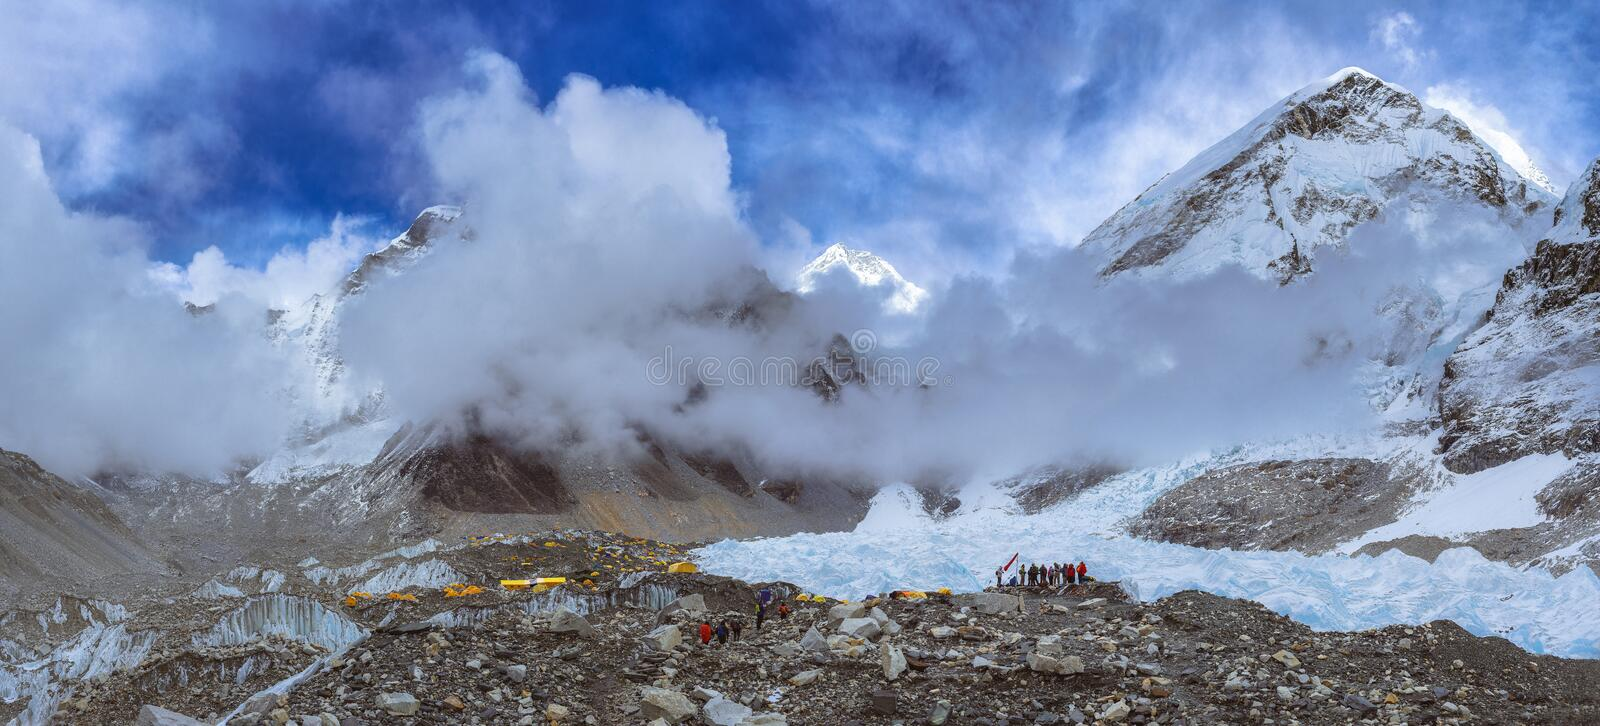 People at Everest Base Camp, 5,364 metres 17,598 ft . royalty free stock image